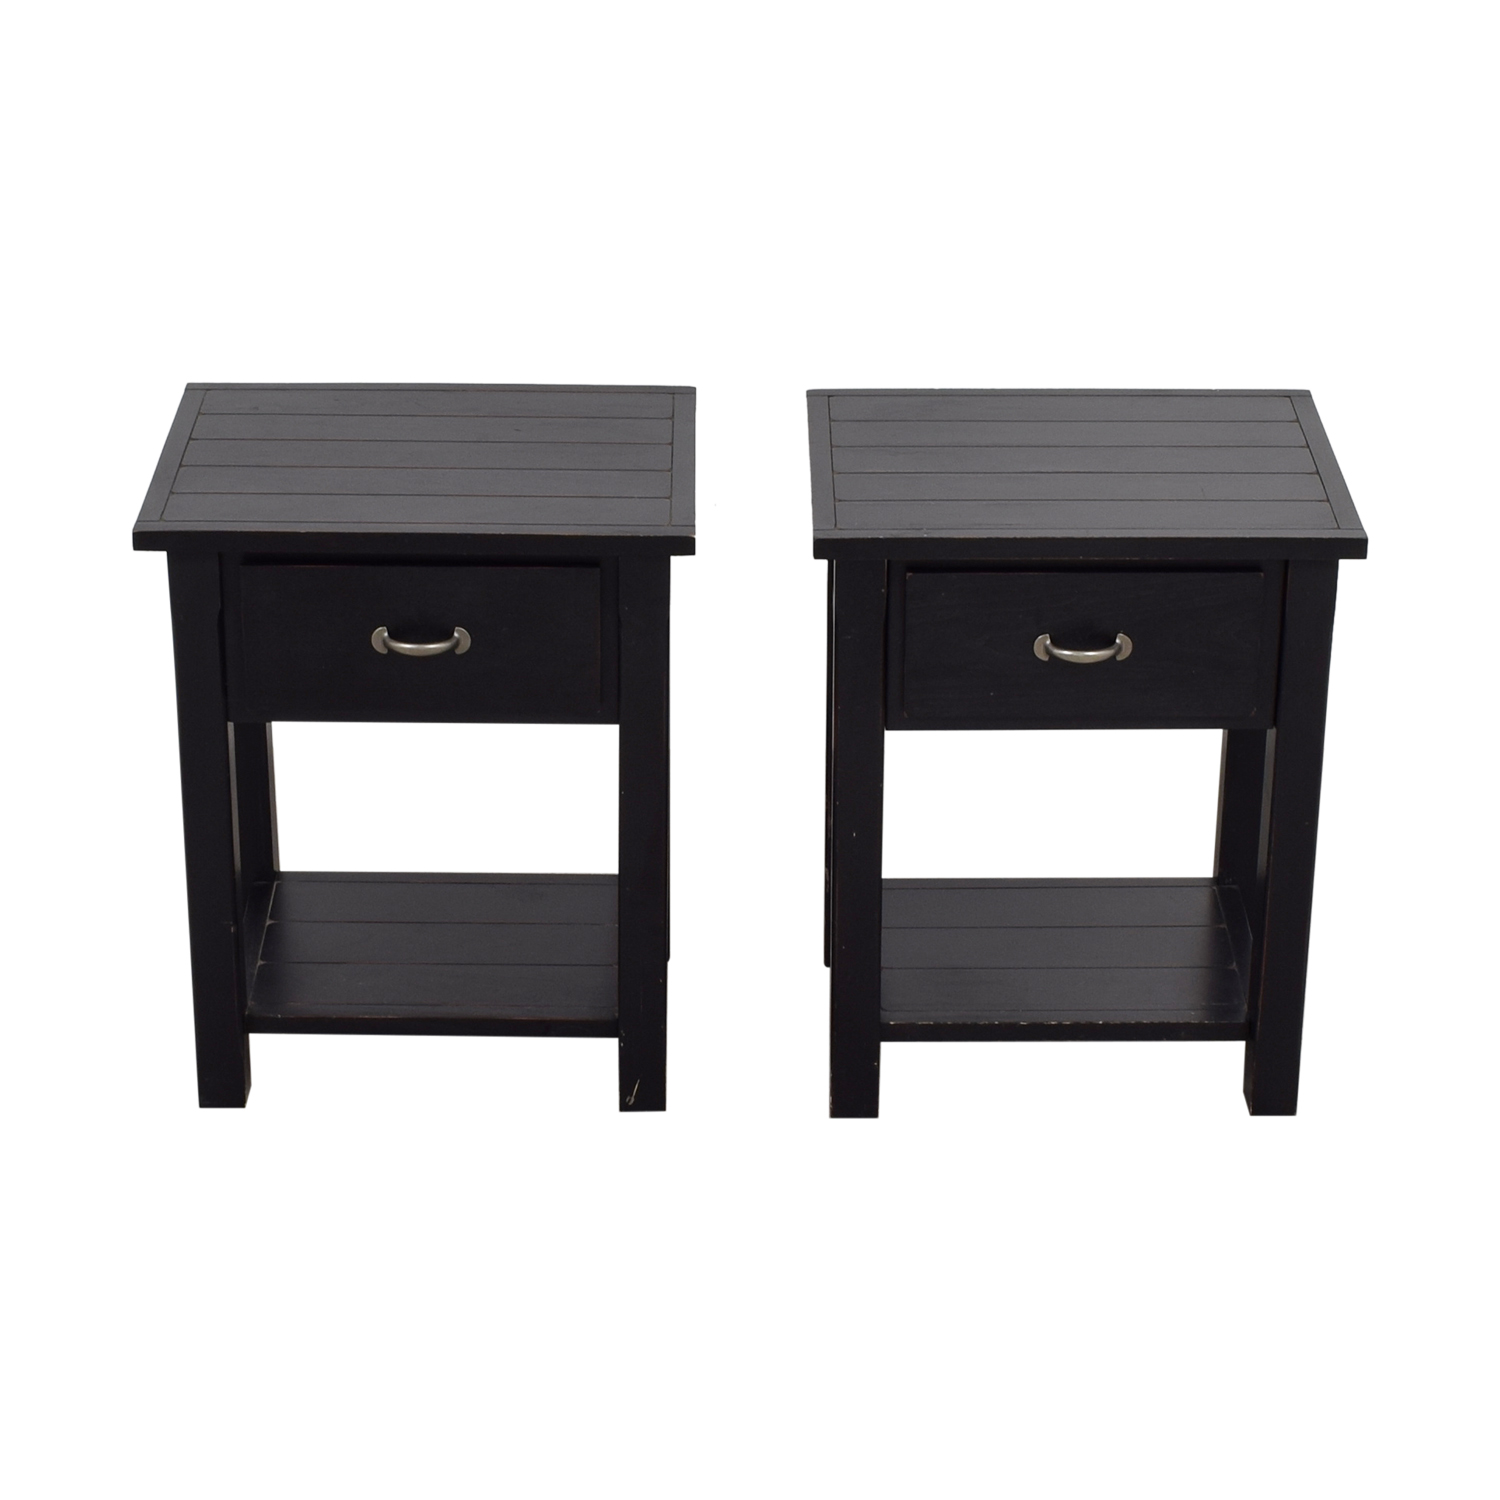 black side table with drawer design ideas pottery barn single tables used winsome timmy accent off farmhouse drop leaf metal wood top battery operated desk lamp hall console kmart